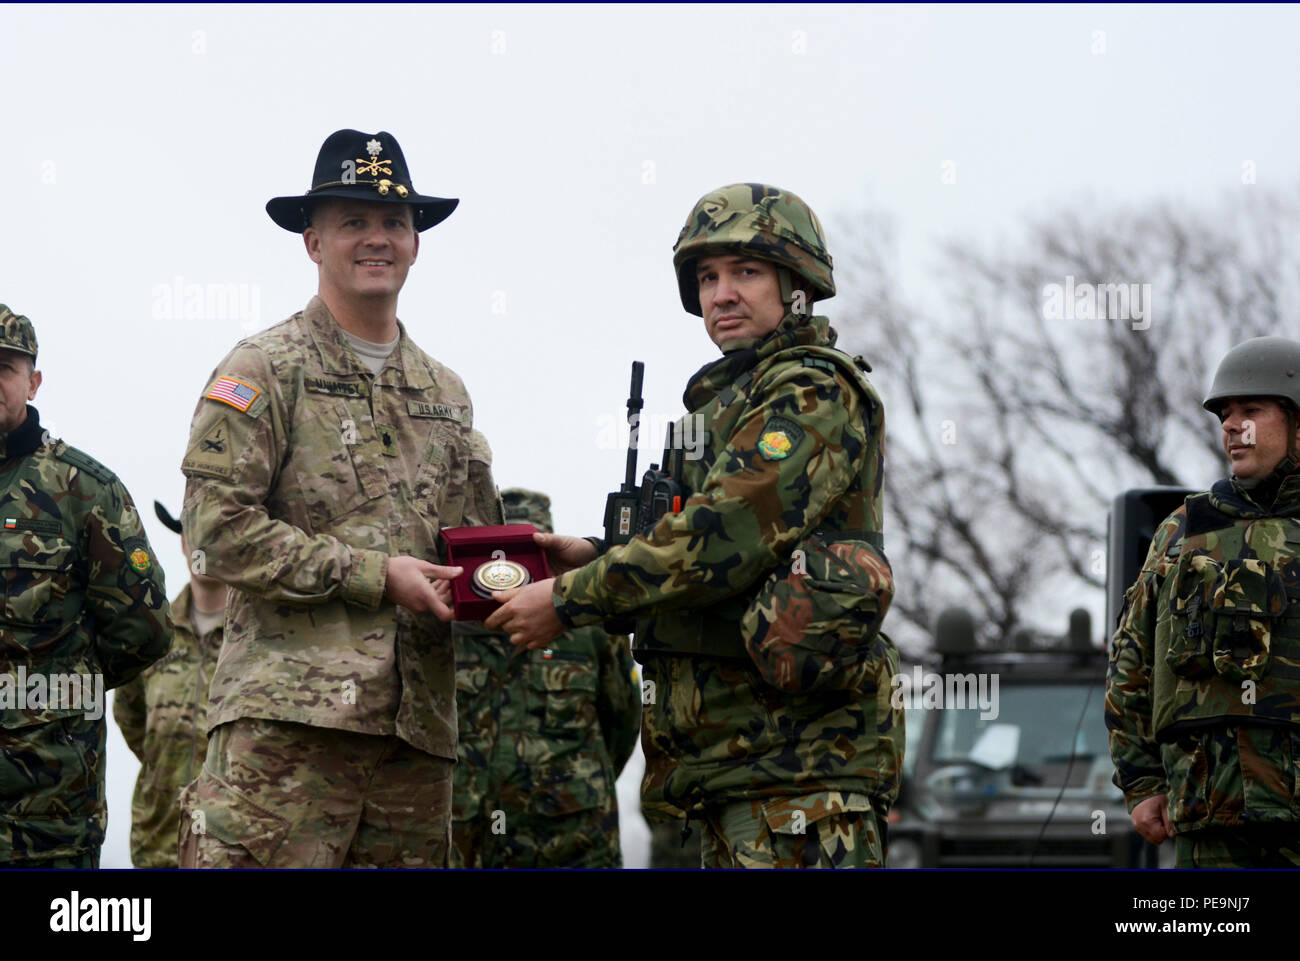 Bulgarian Lt. Col. Tzvetan Kochankov (right), the commander of 1-61st Mechanized Battalion, presents a gift to U.S. Army Lt. Col. Christopher Mahaffey (left), the commander of 5th Squadron, 7th Cavalry Regiment, 3rd Infantry Division, stationed at Fort Stewart, Ga., during the closing ceremony of Exercise Peace Sentinel at Novo Selo Training Center, Bulgaria, Nov. 24, 2015. (U.S. Army photo by Staff Sgt. Steven M. Colvin/Released) - Stock Image